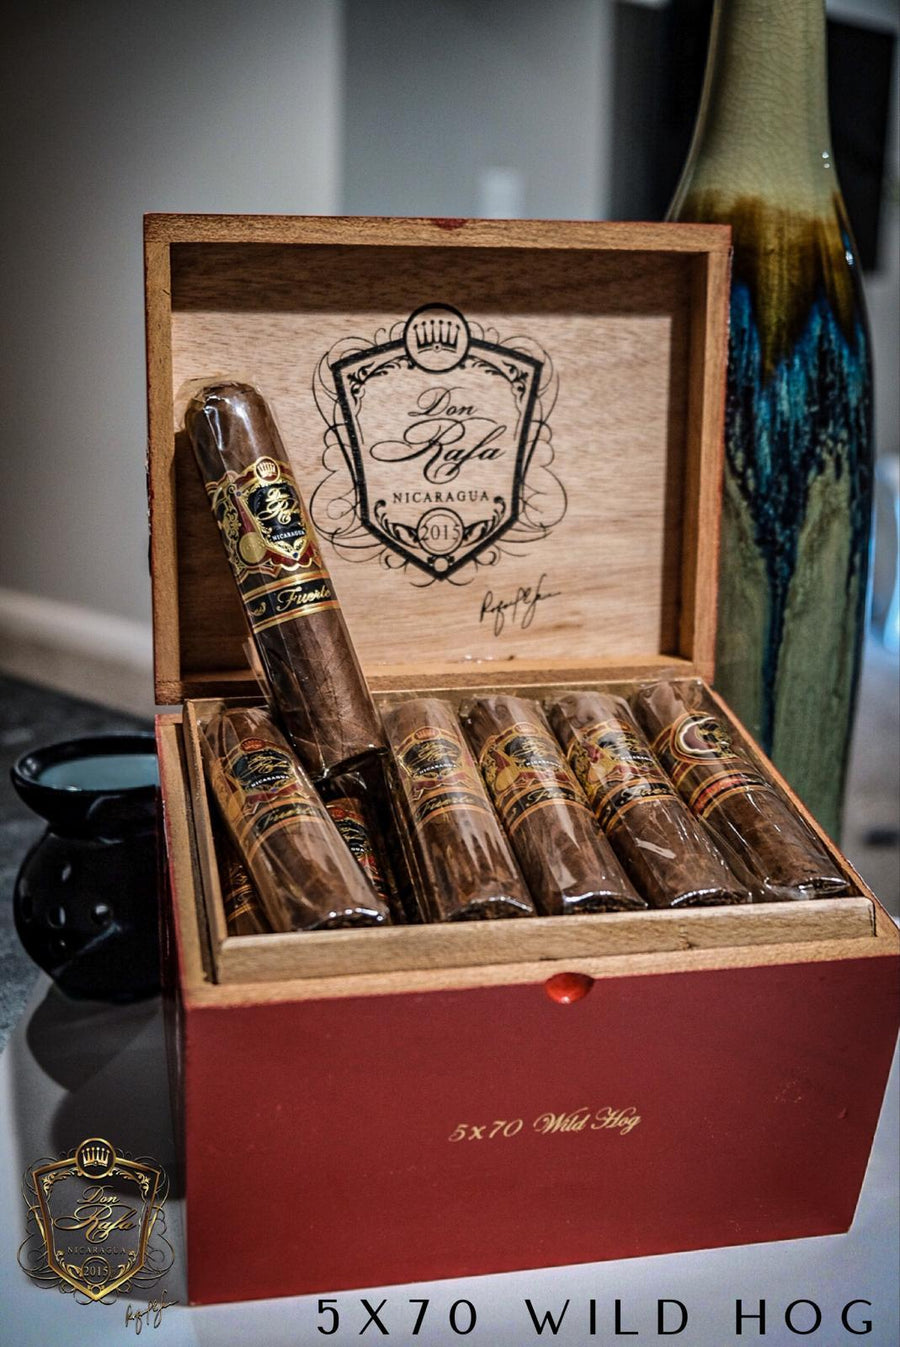 5 X 70 Wild Hog Habano - Don Rafa Distributors